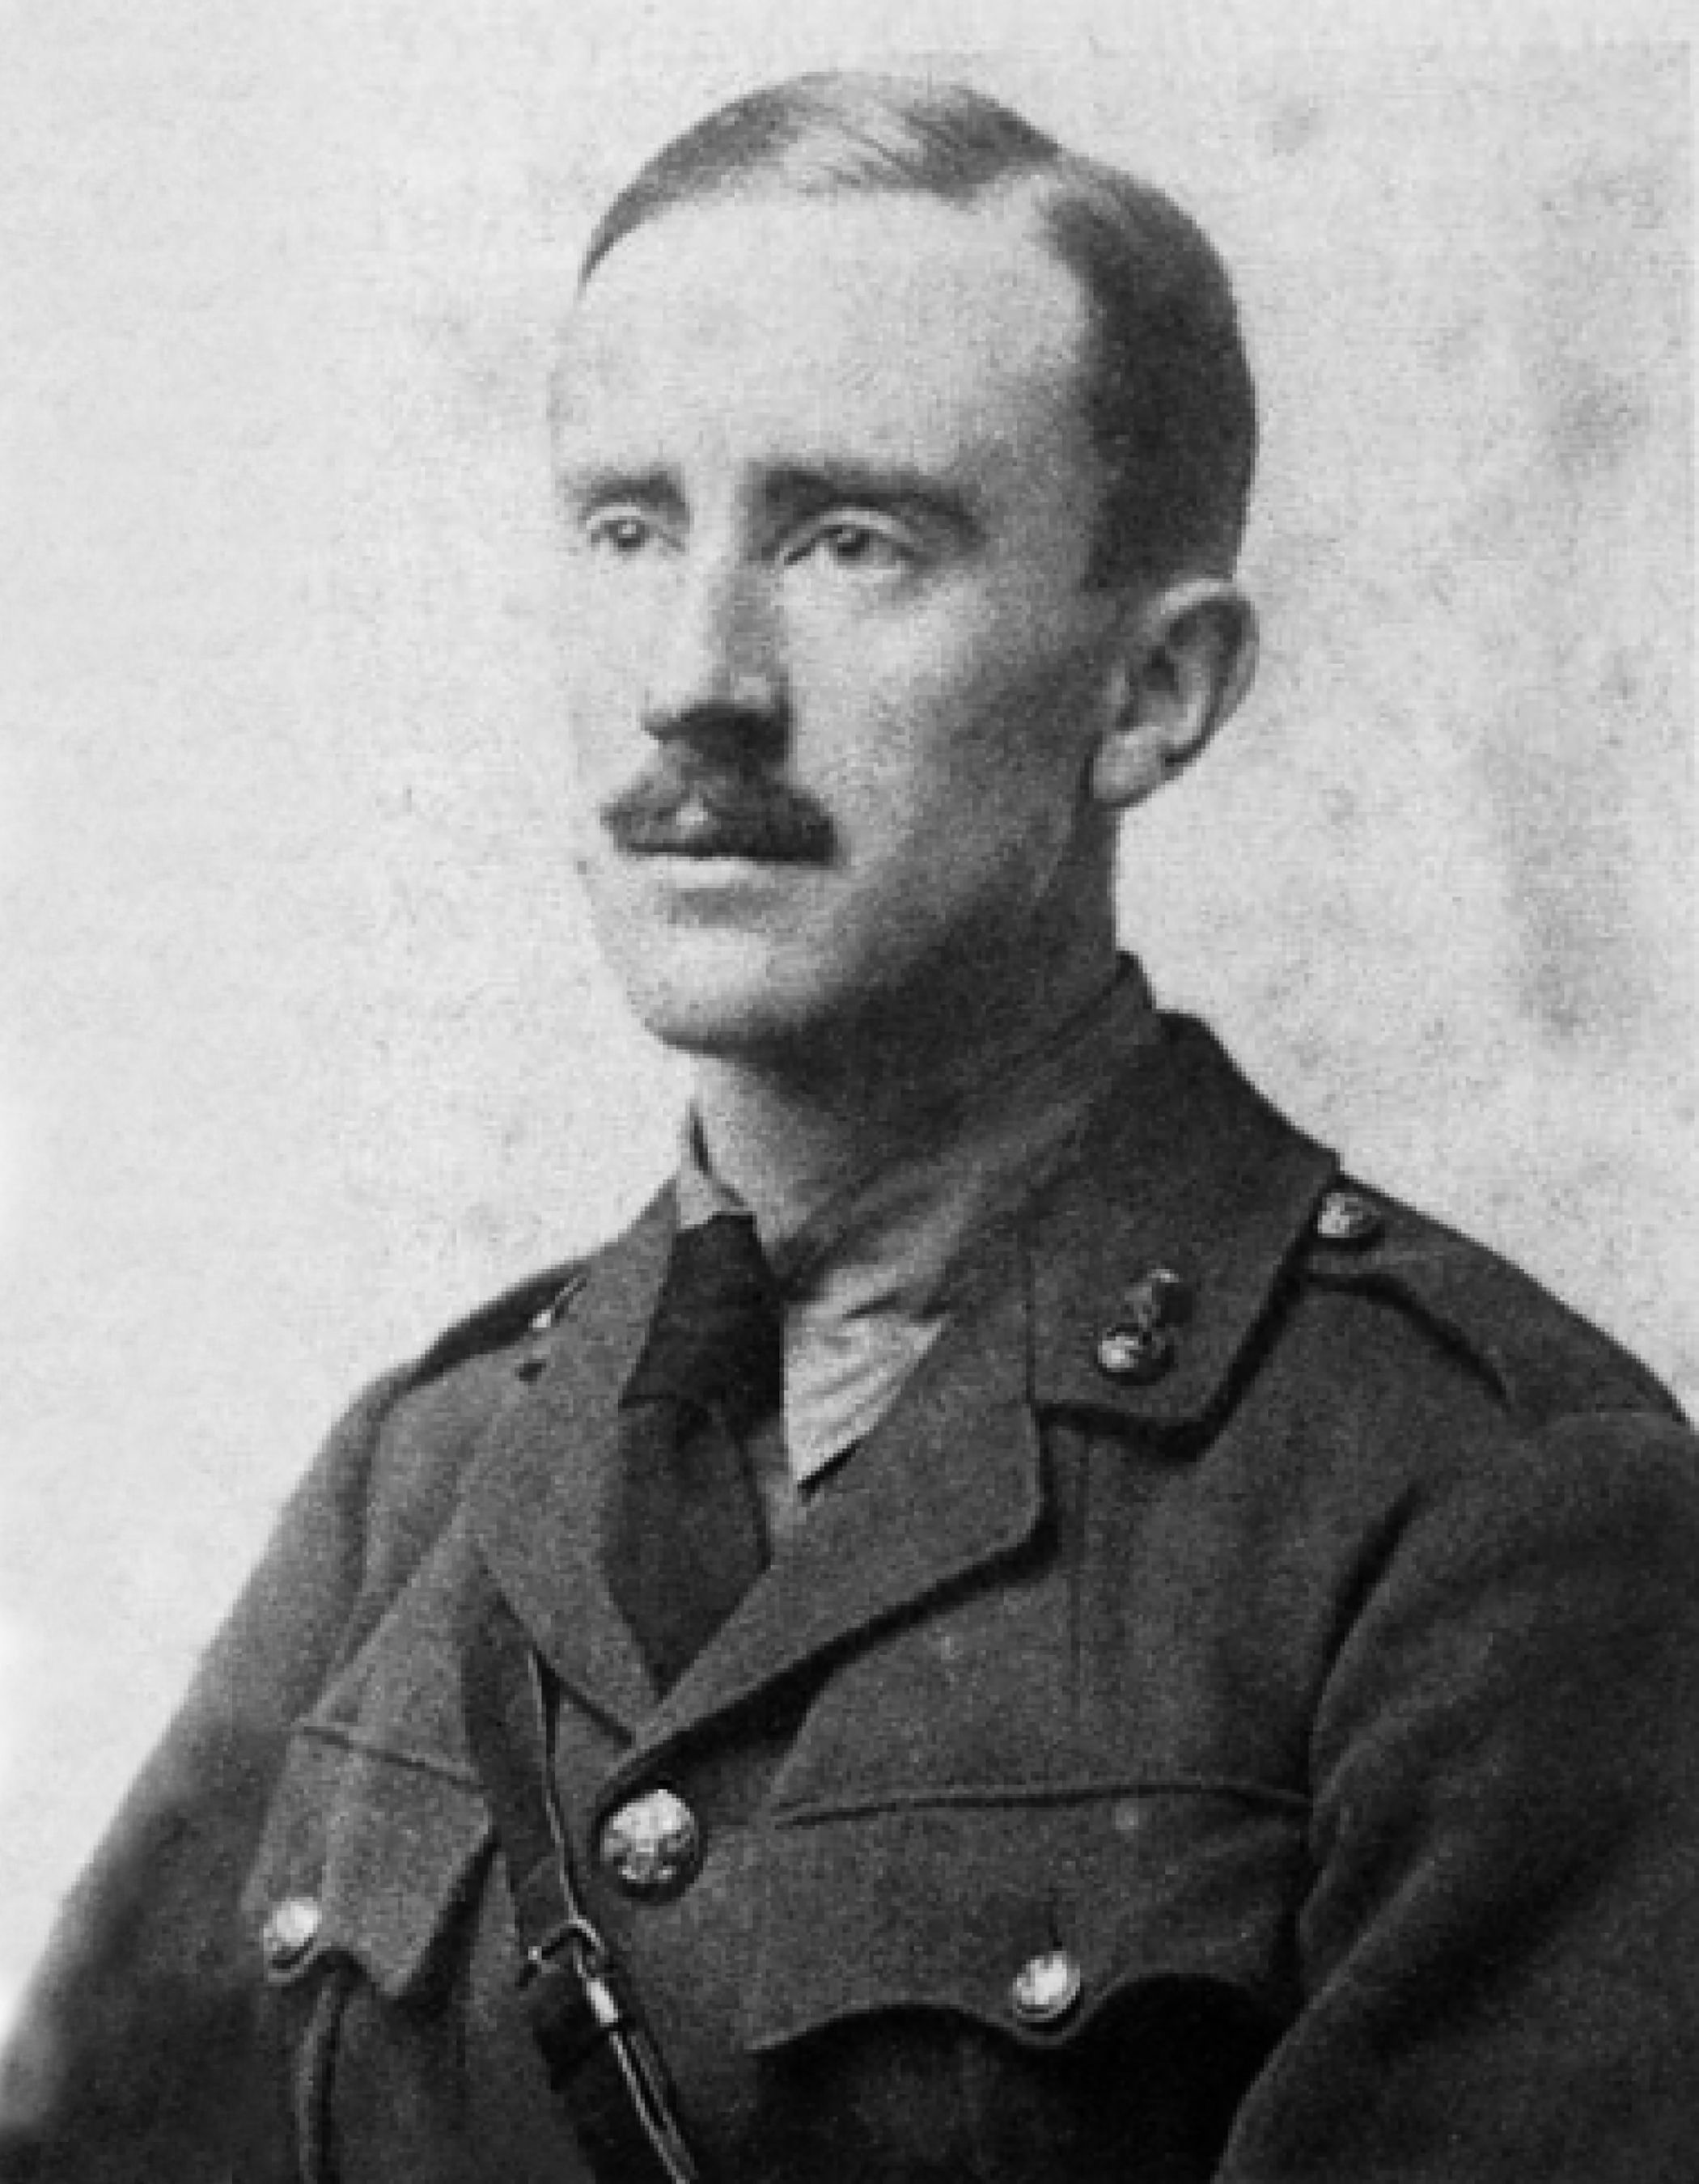 j-r-r-tolkien-young